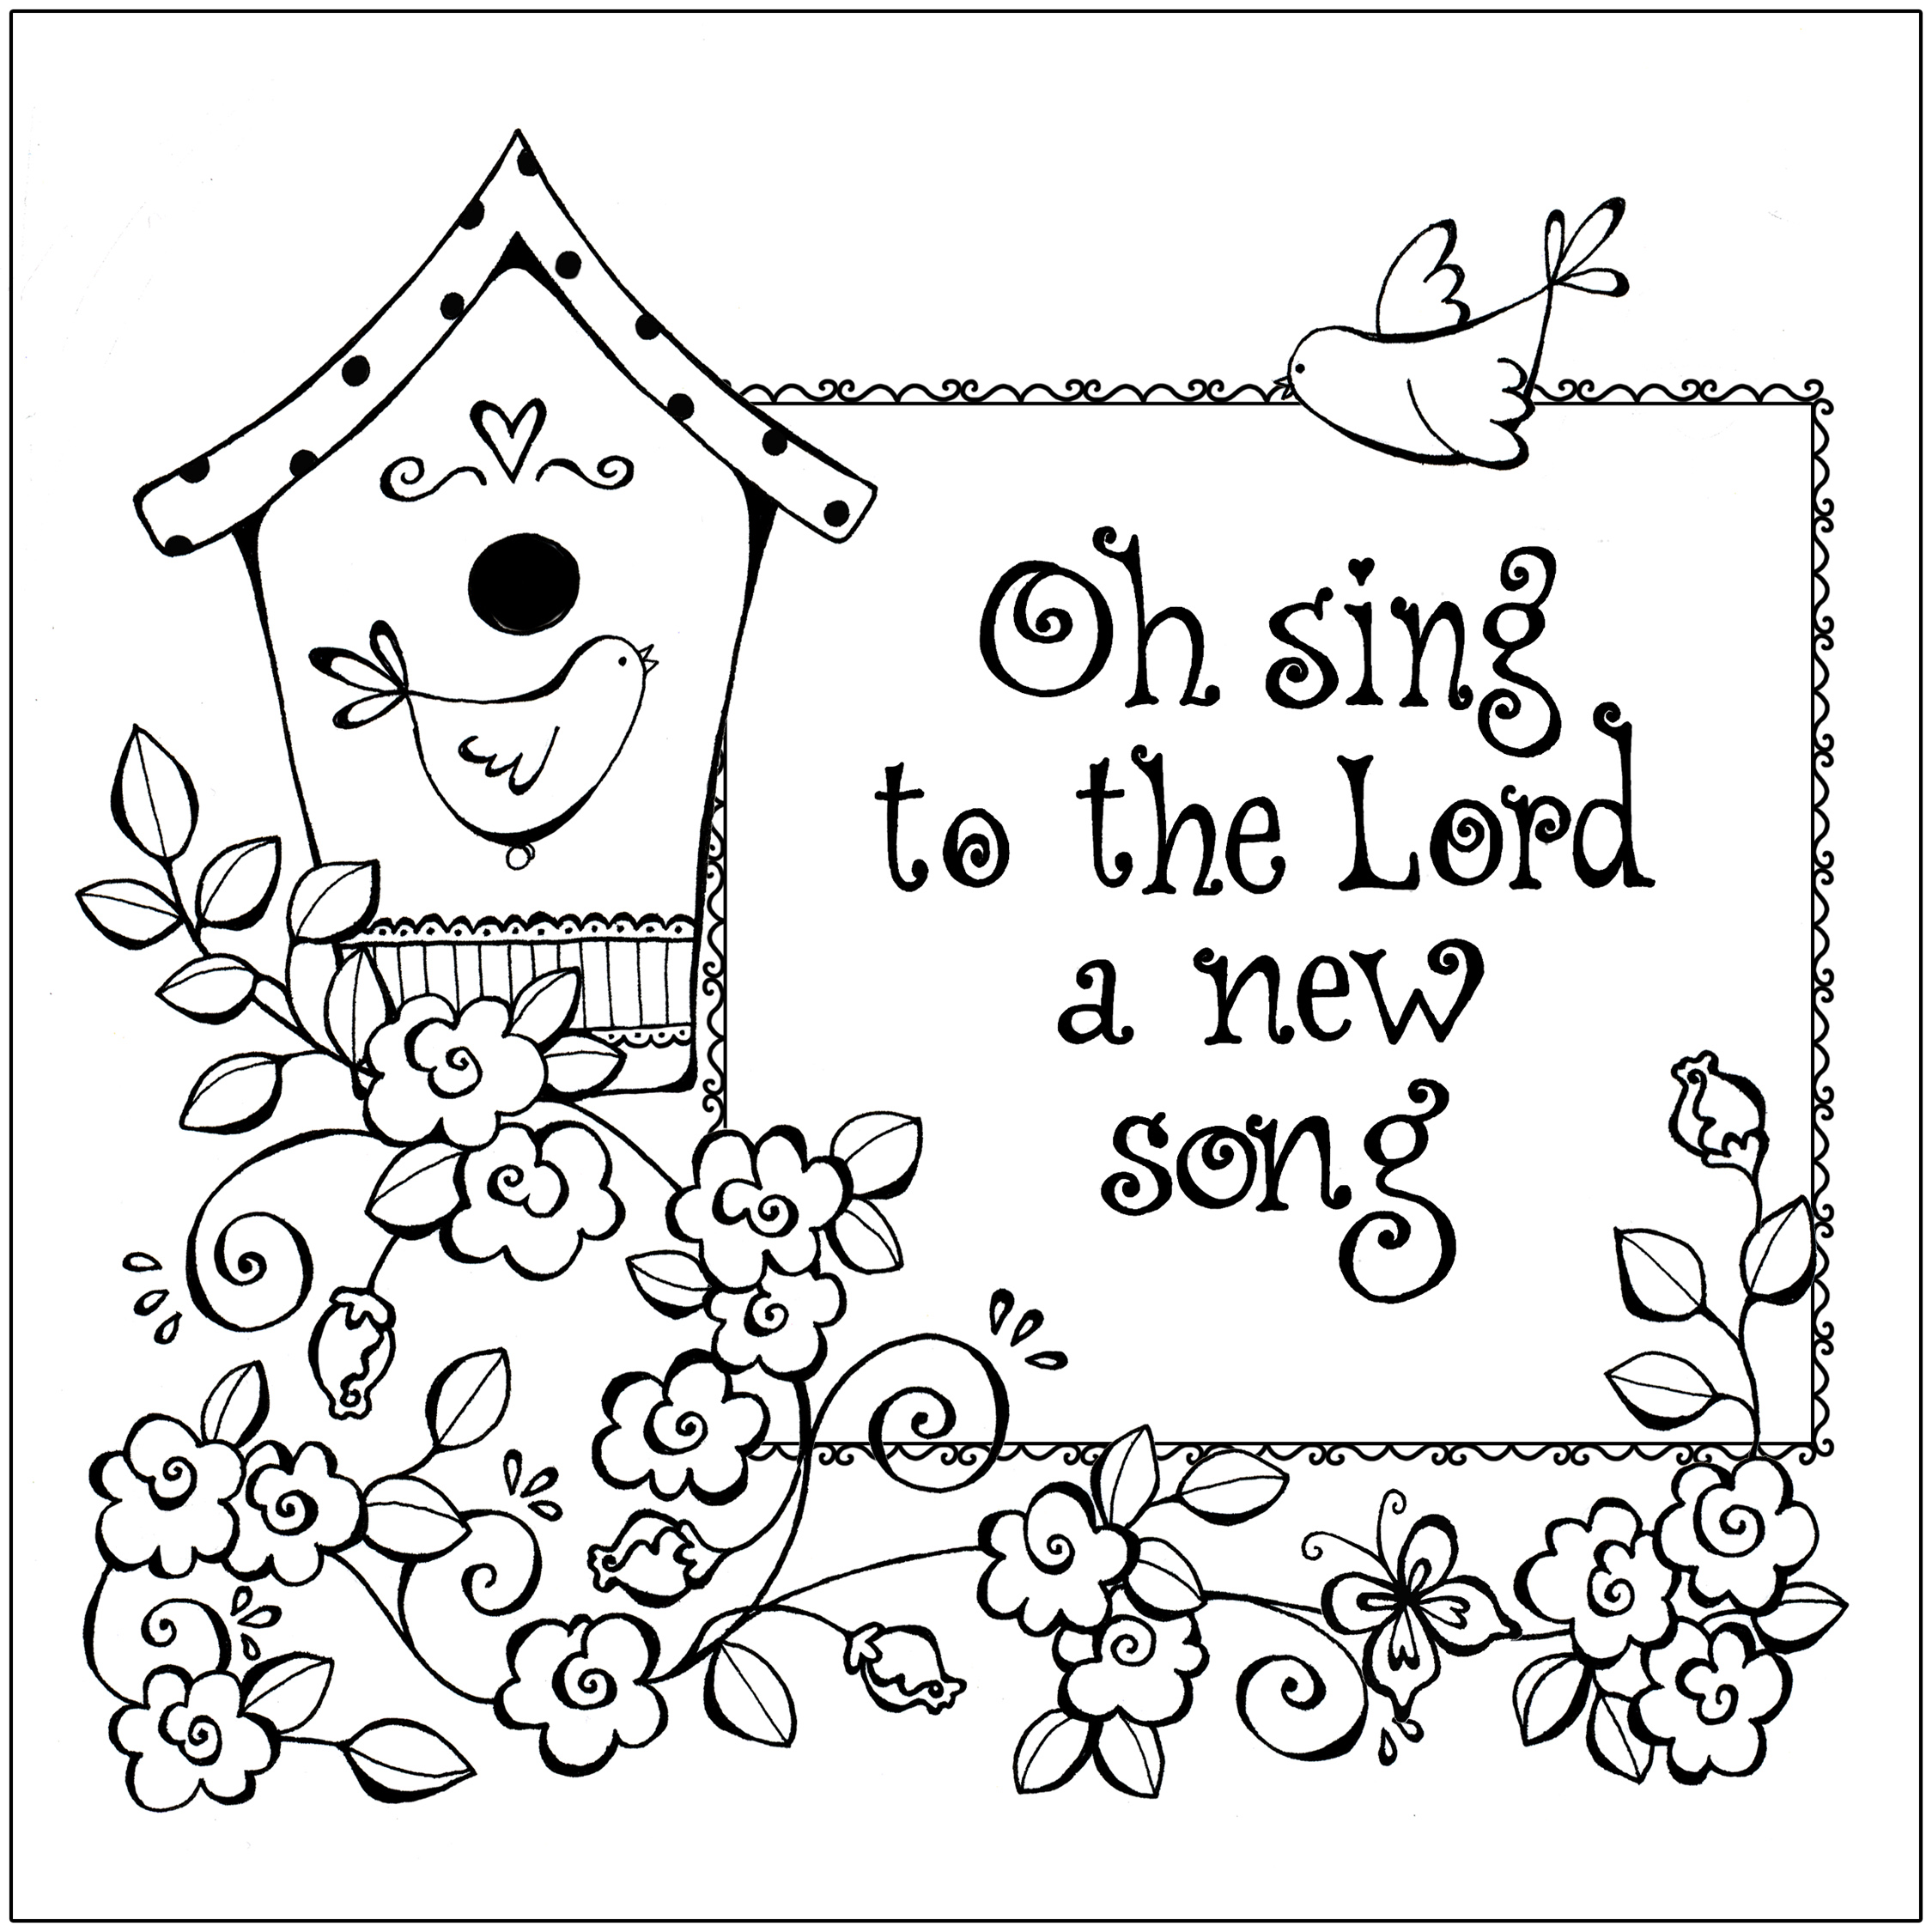 Free Bible Coloring Pages Fair Free Printable Christian Coloring Pages For Kids  Best Coloring Review